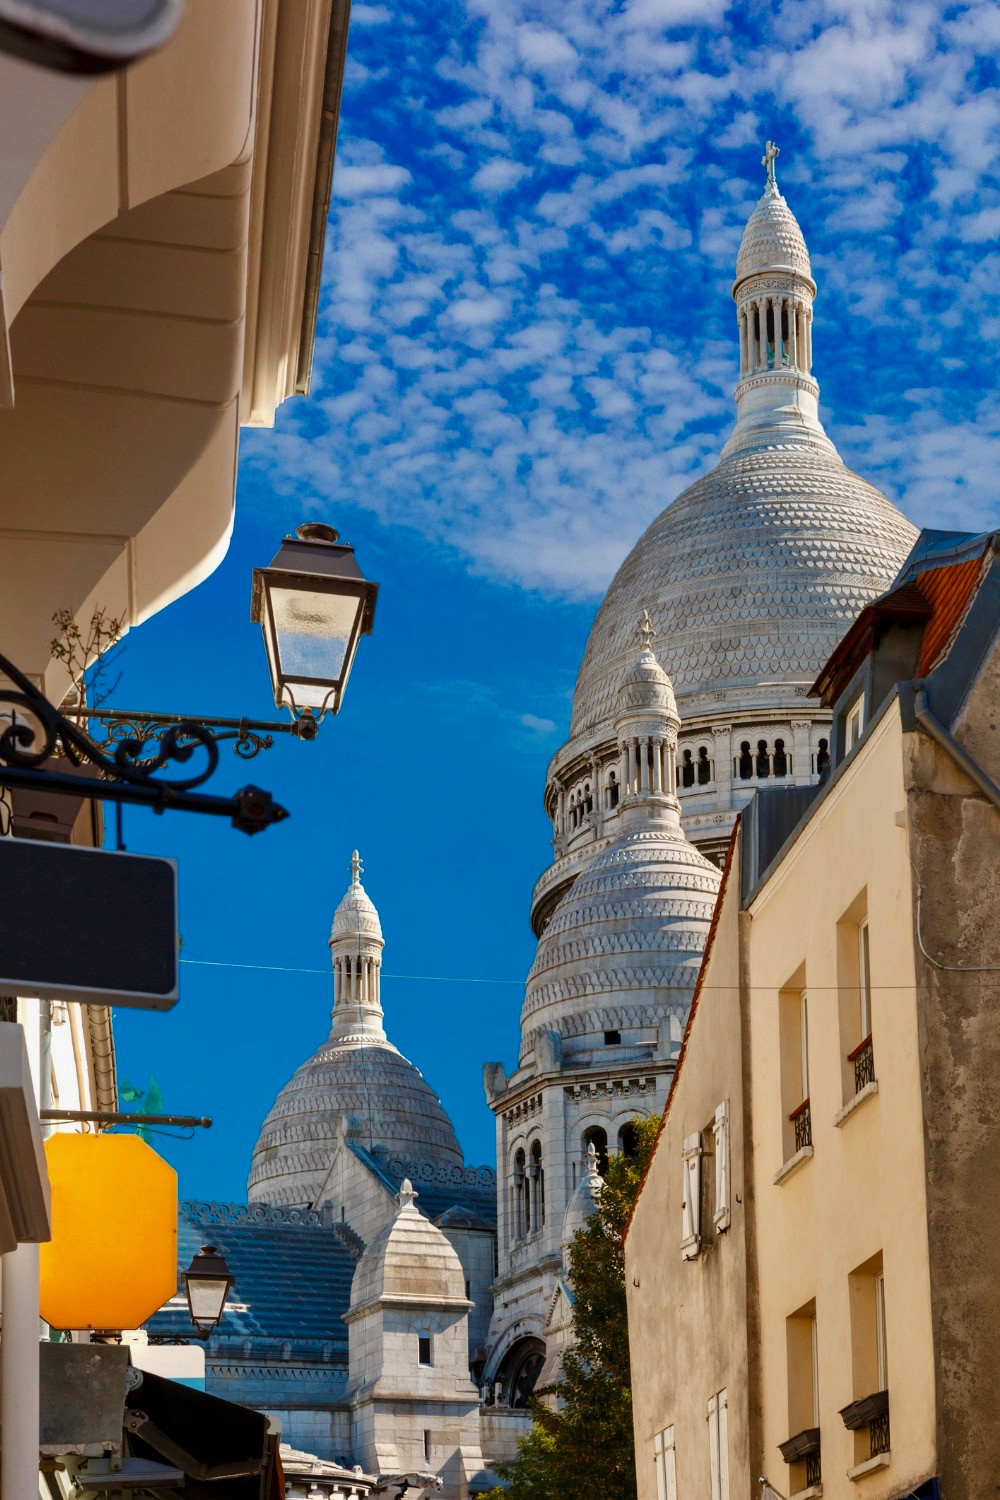 view of Sacre Coeur from Rue du Chevalier de la Barre